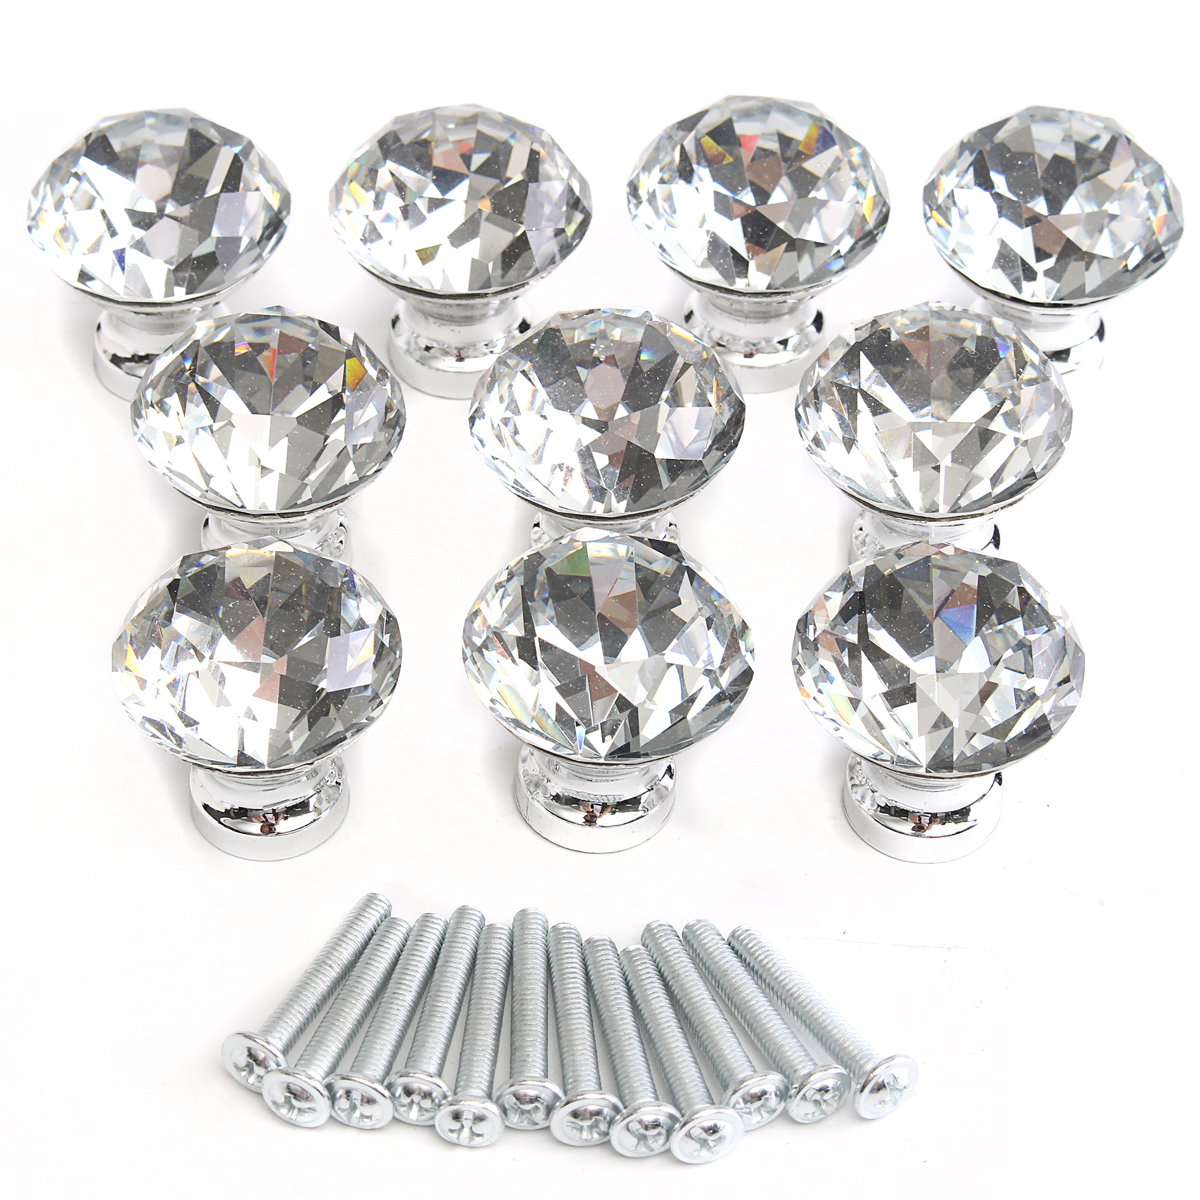 10Pcs Crystal Glass Cabinet Door Knob Clear Diamond Shape Drawer Pull Handle